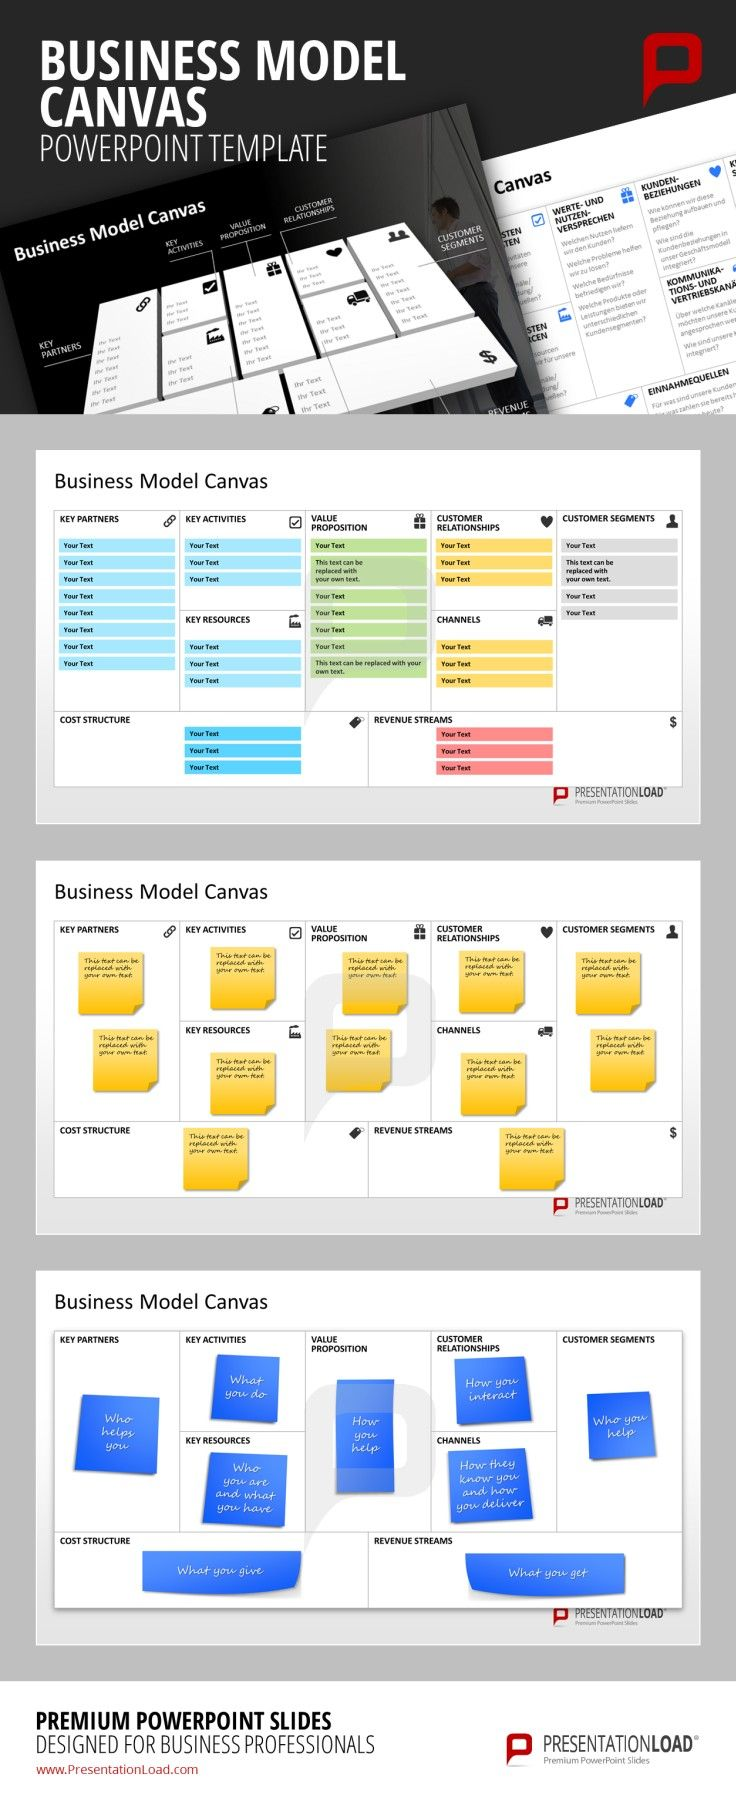 Business model canvas powerpoint template strategically plan and business model canvas powerpoint template strategically plan and present your business model with the business model toneelgroepblik Image collections